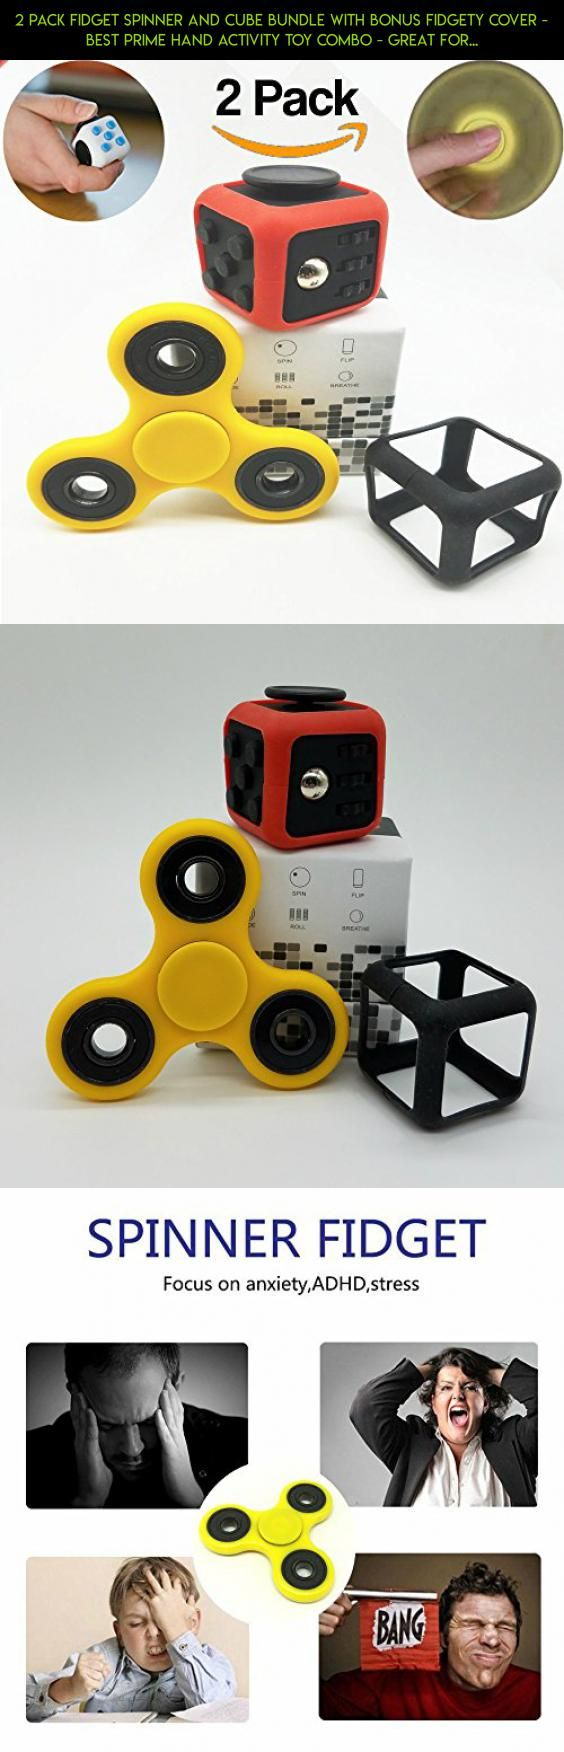 2 Pack Fidget Spinner and Cube Bundle with BONUS Fidgety Cover - Best Prime Hand Activity Toy Combo - Great for Anxiety, Stress Relief, Focus, Adhd - Cool Kids Adults Gift Set #drone #technology #gadgets #combo #camera #shopping #racing #plans #fidget #products #parts #tech #fpv #cube #kit